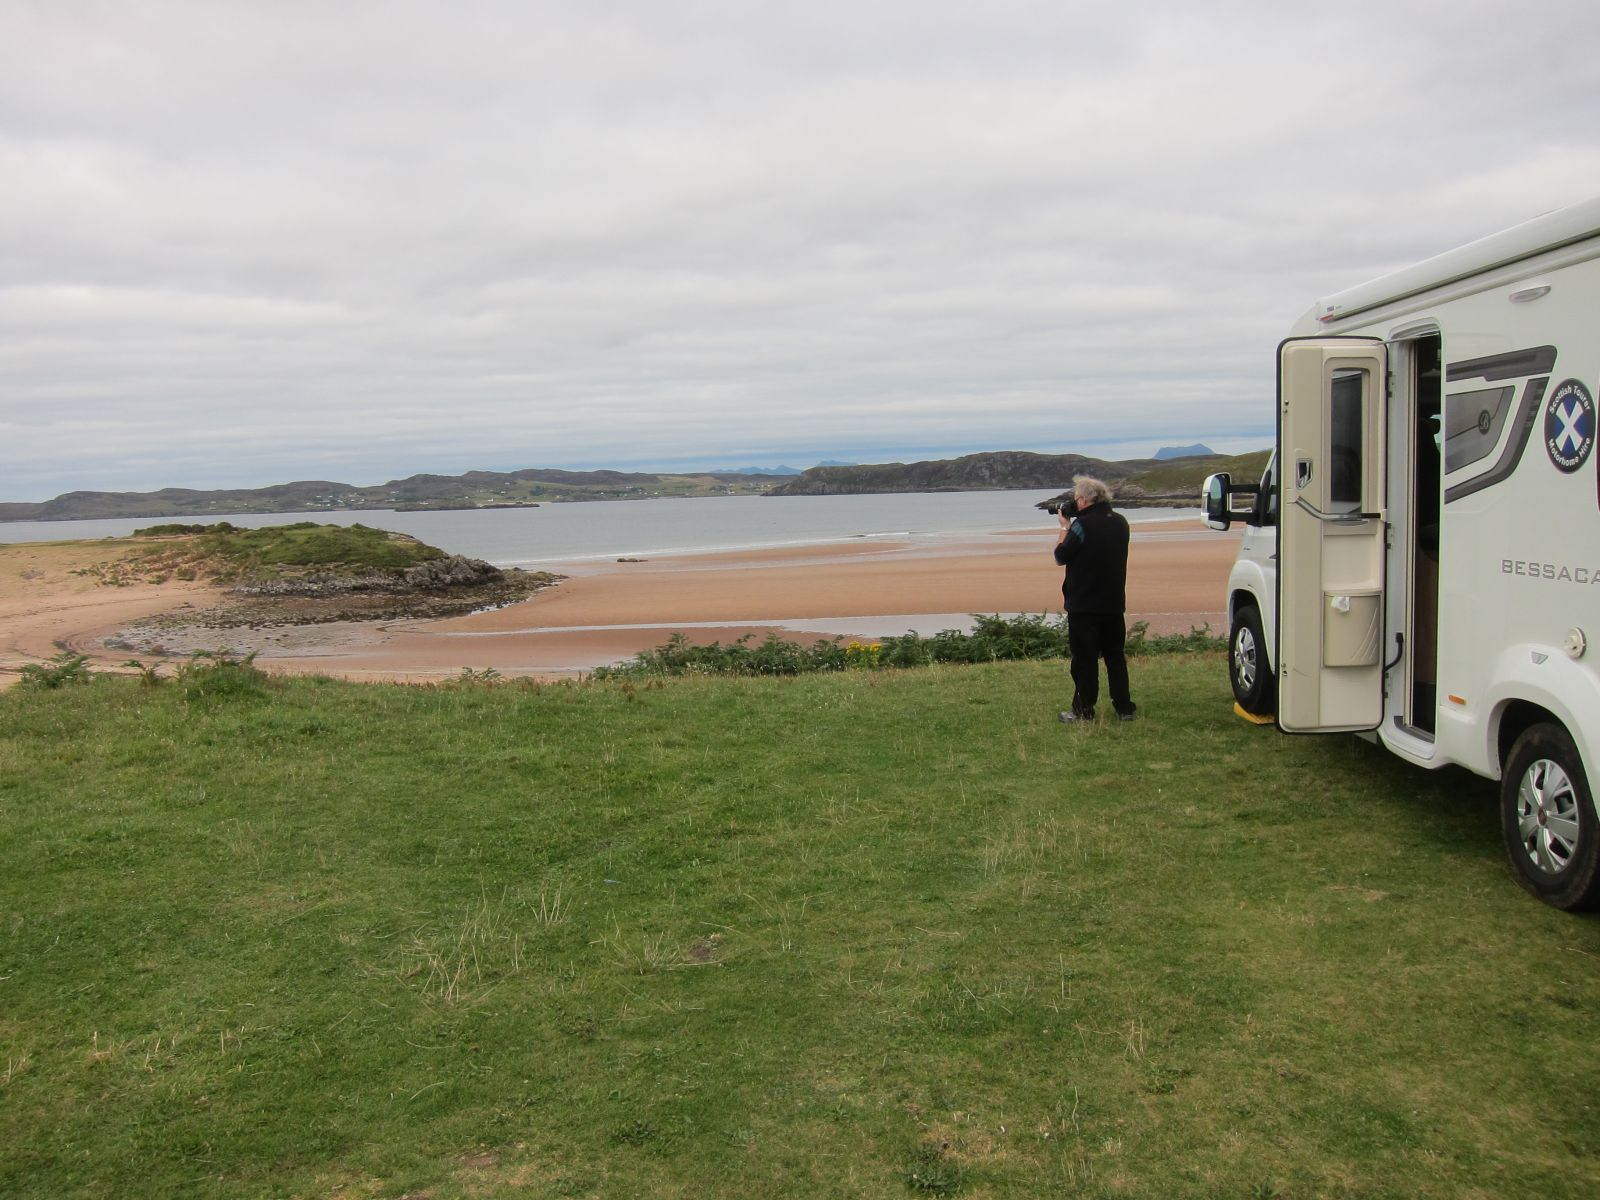 Beach front location wildlife spotting in your motorhome